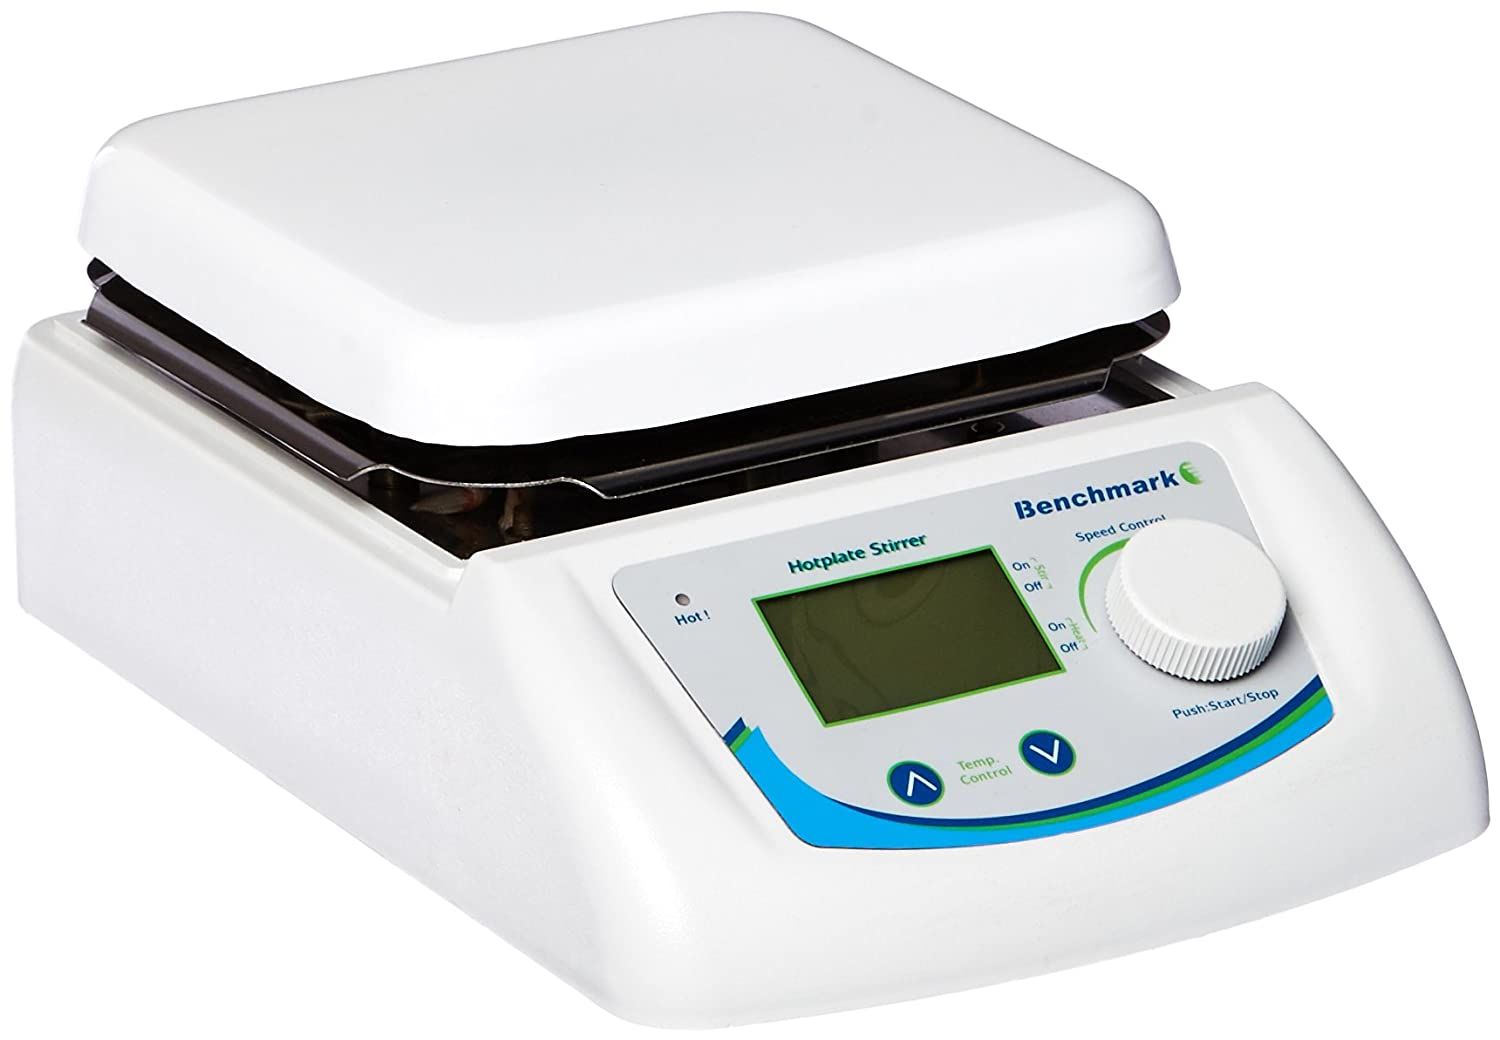 Amazon.com: Benchmark Scientific h3760-hs hotplate Digital y ...